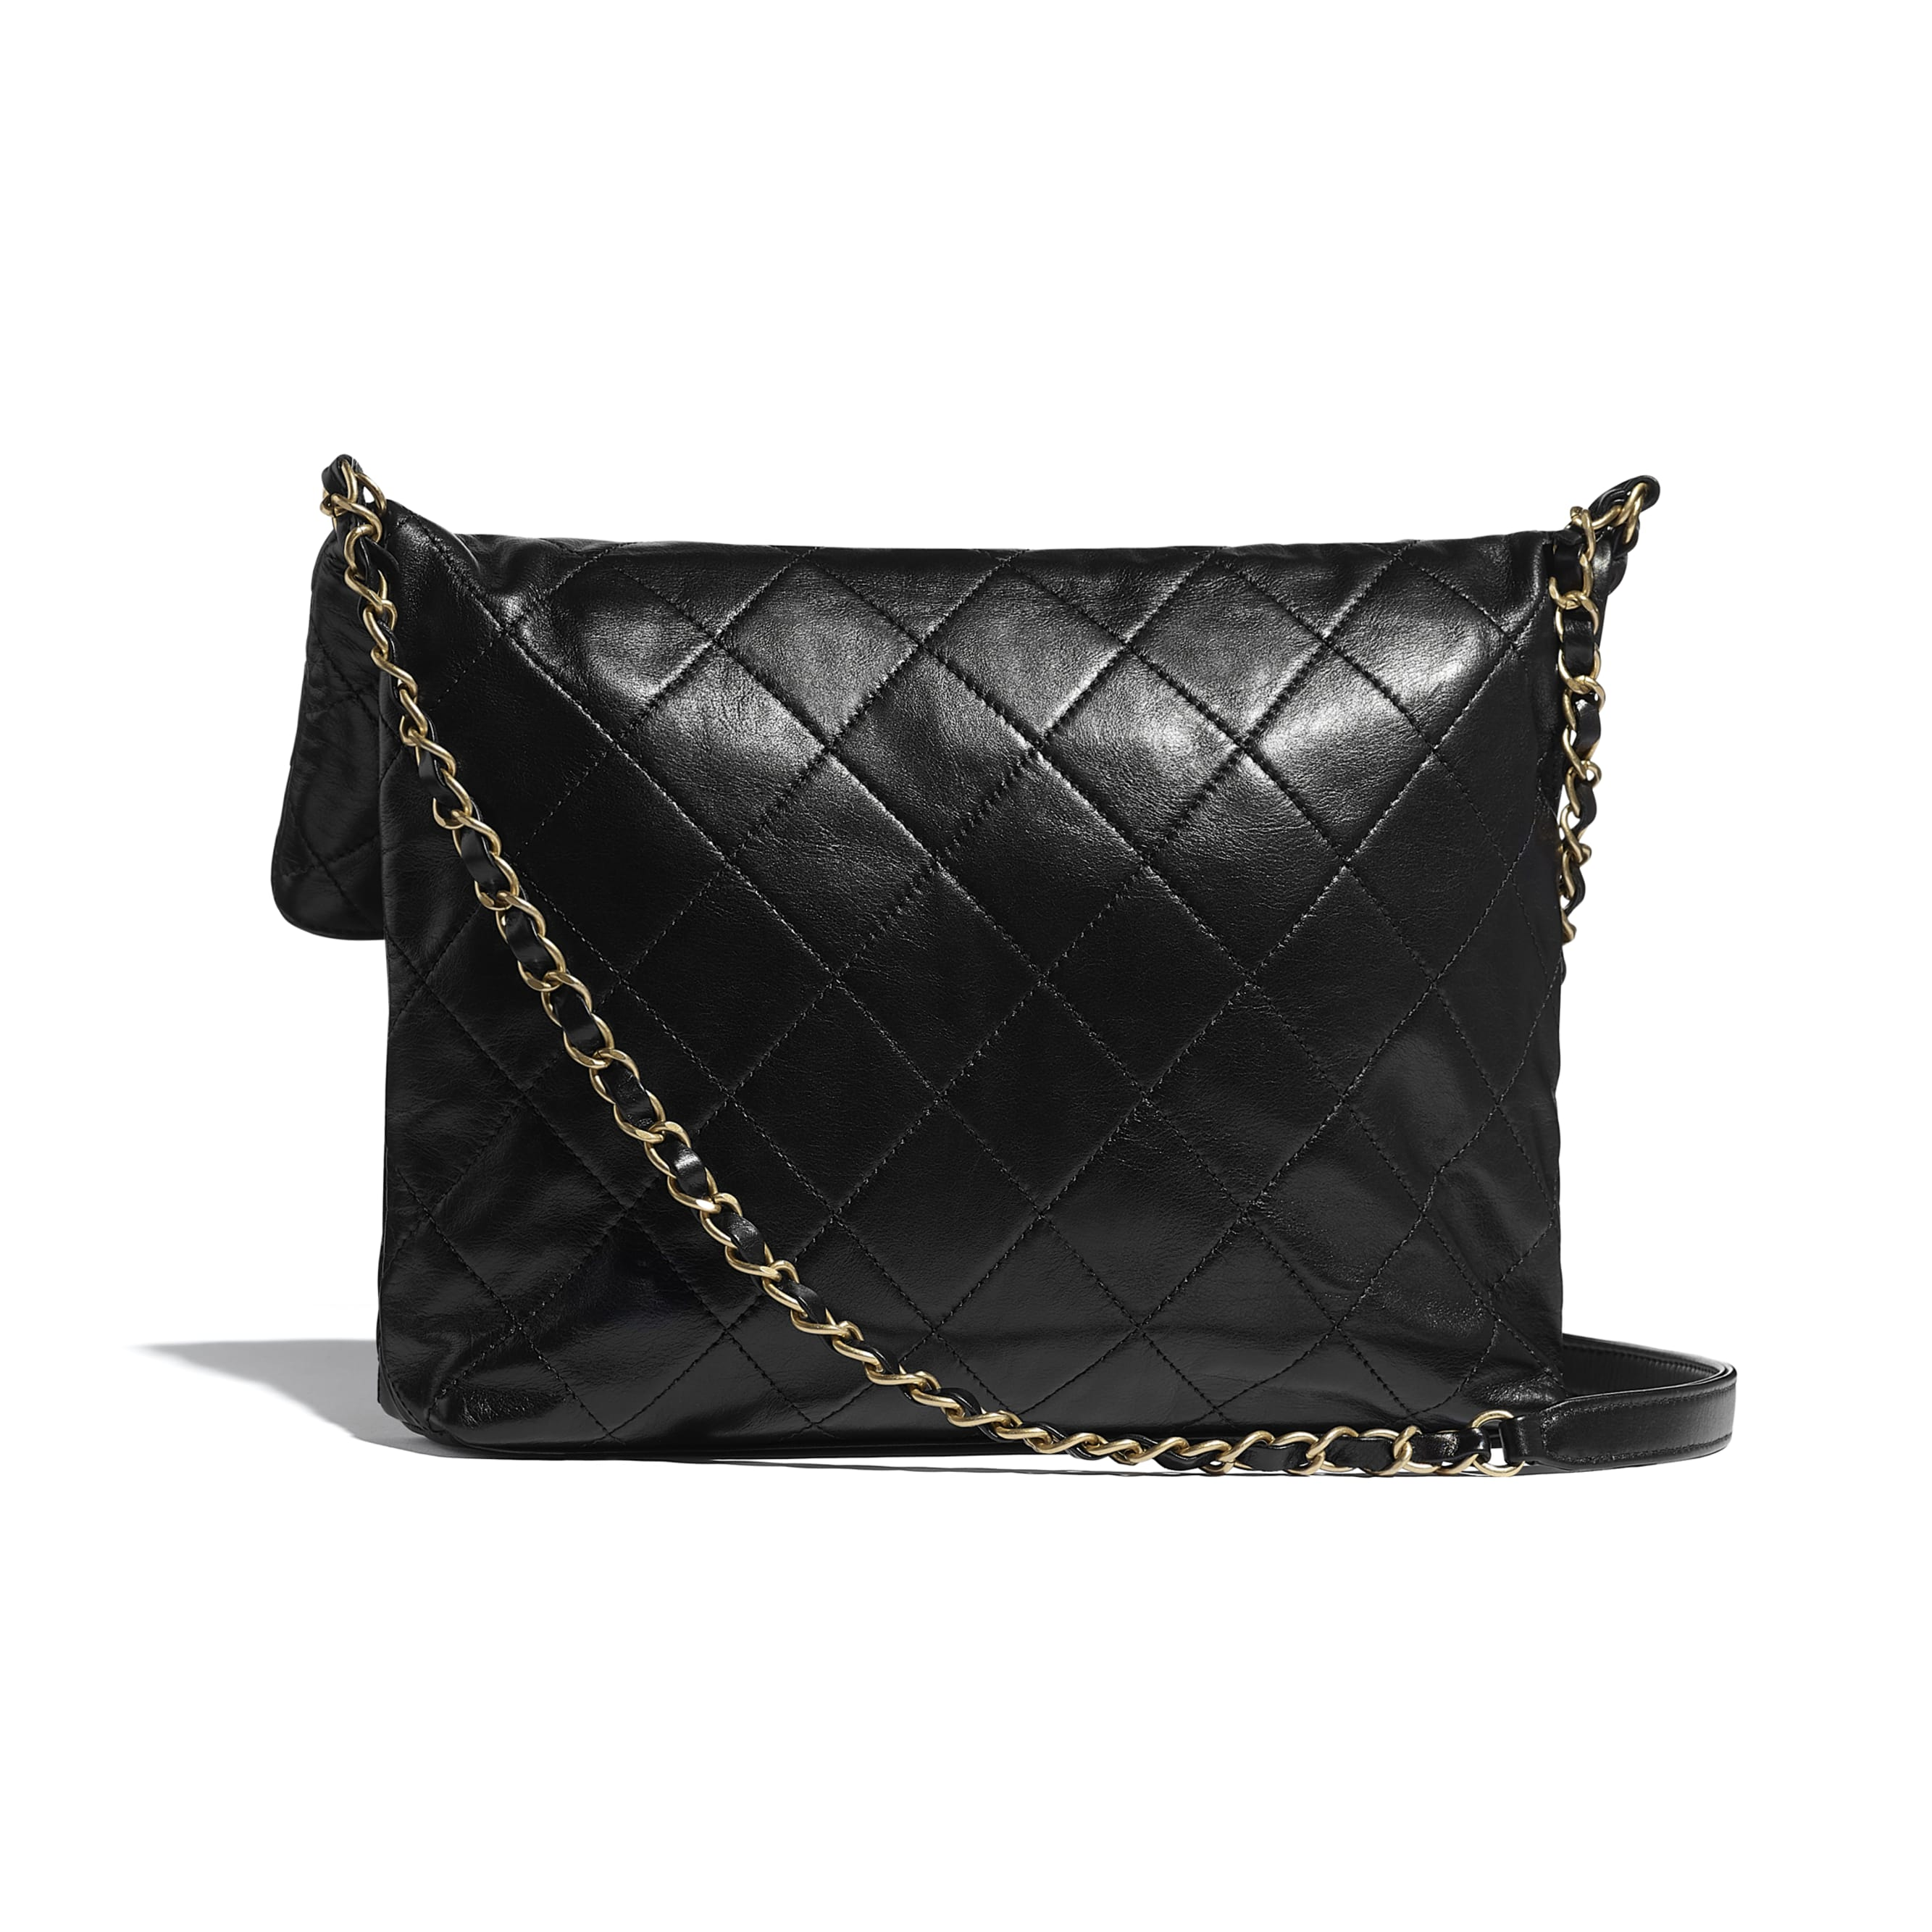 Shopping Bag - Black - Calfskin, Crystal Pearls & Gold-Tone Metal - CHANEL - Alternative view - see standard sized version